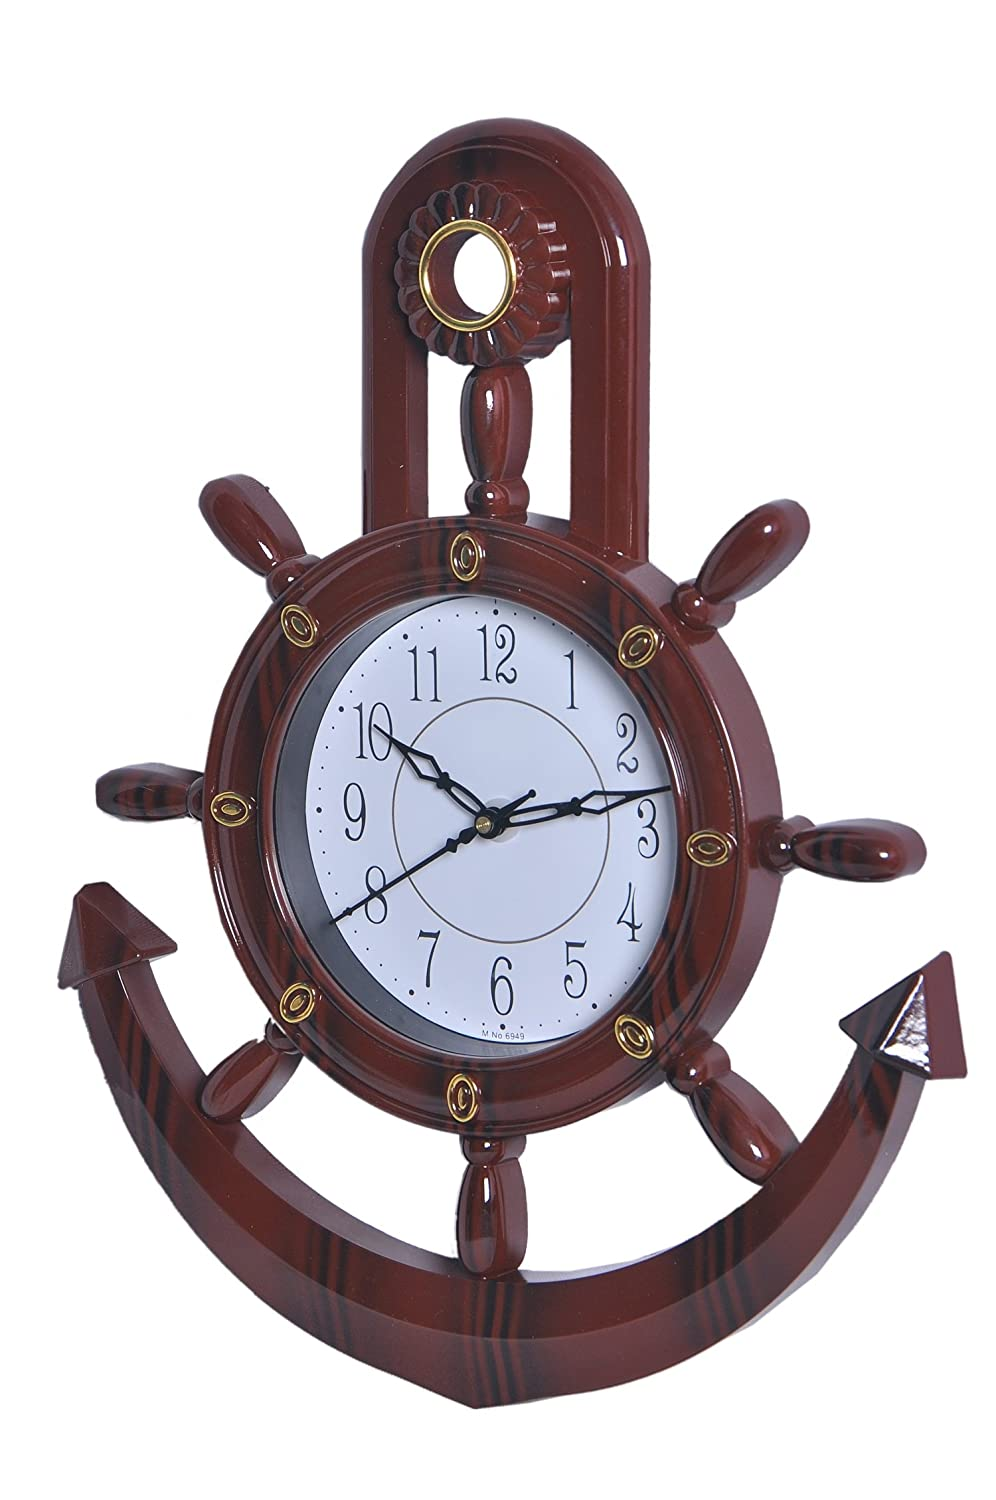 Anchor wall clock image collections home wall decoration ideas buy jaipurcrafts decorative retro anchor brown pendulum wall clock buy jaipurcrafts decorative retro anchor brown pendulum amipublicfo Images